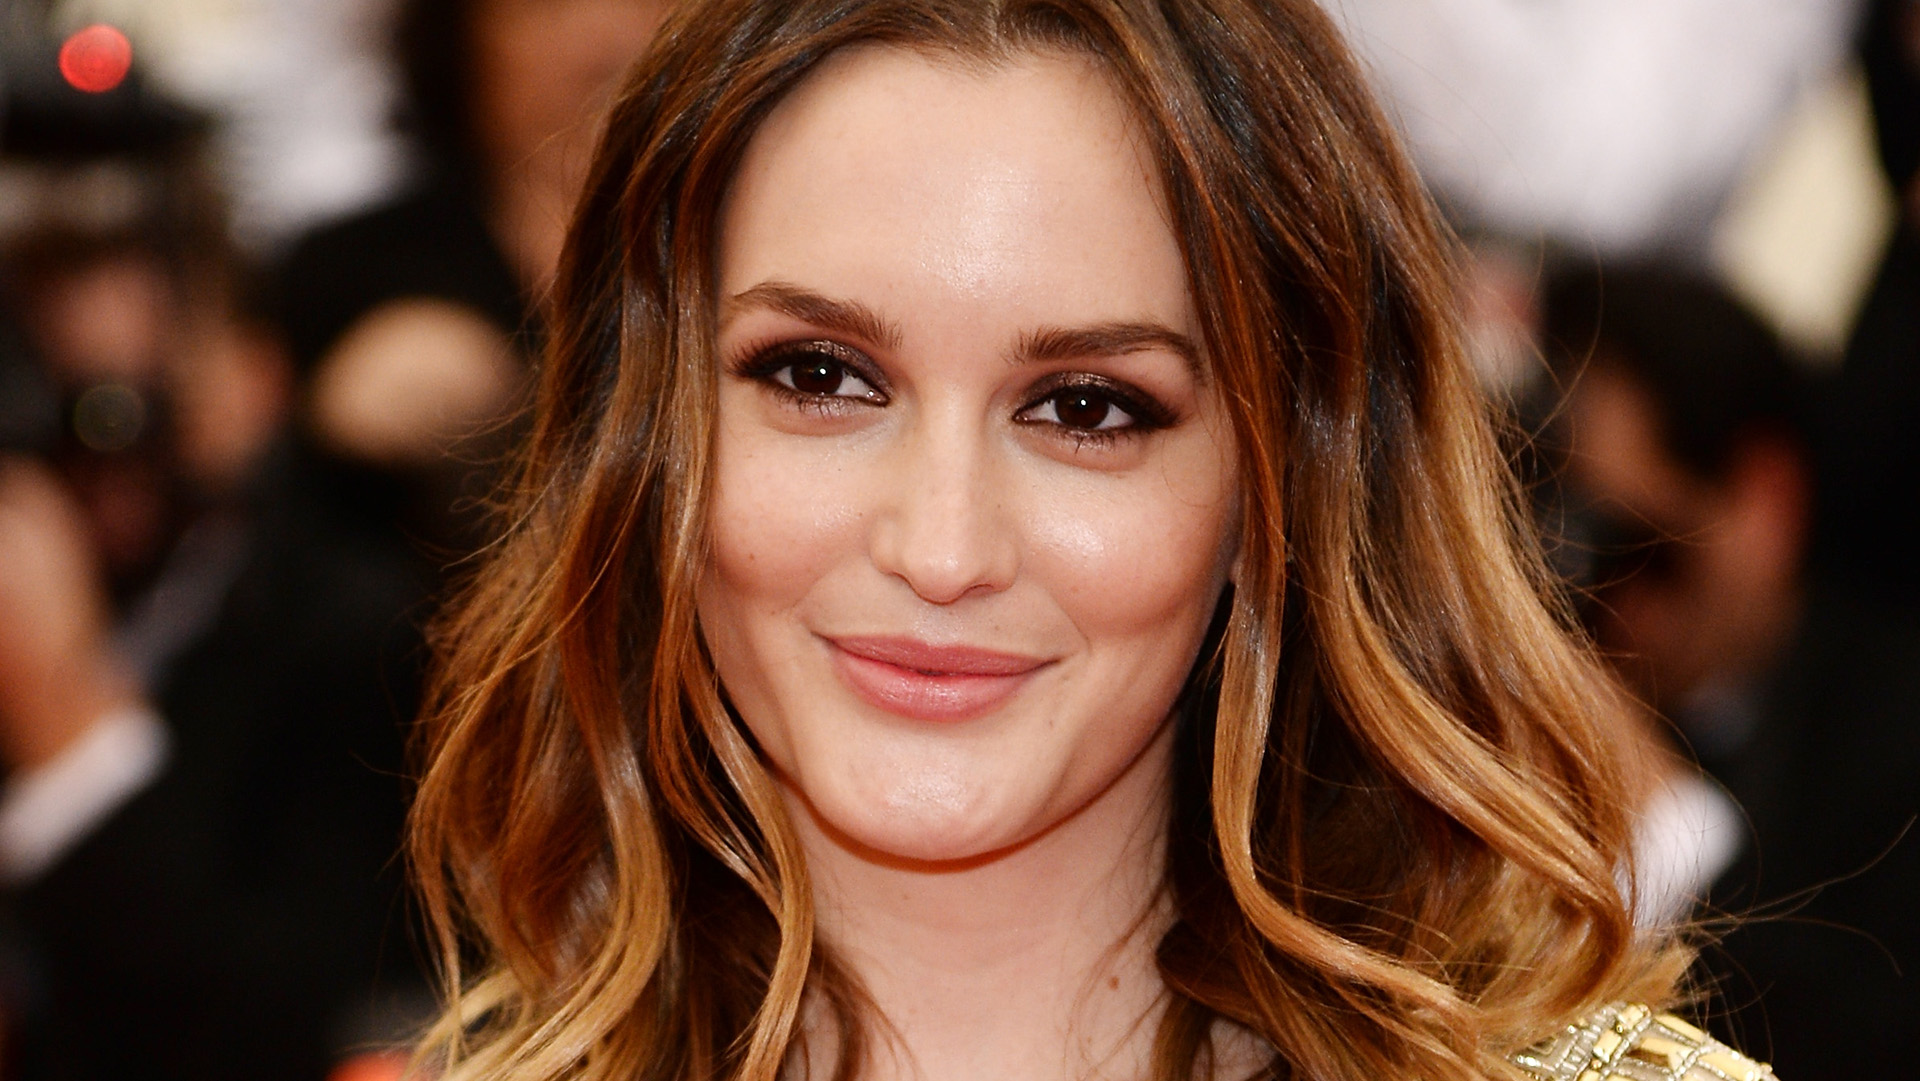 Leighton Meester Shared a Gorgeous Makeup-Free Selfie on Instagram